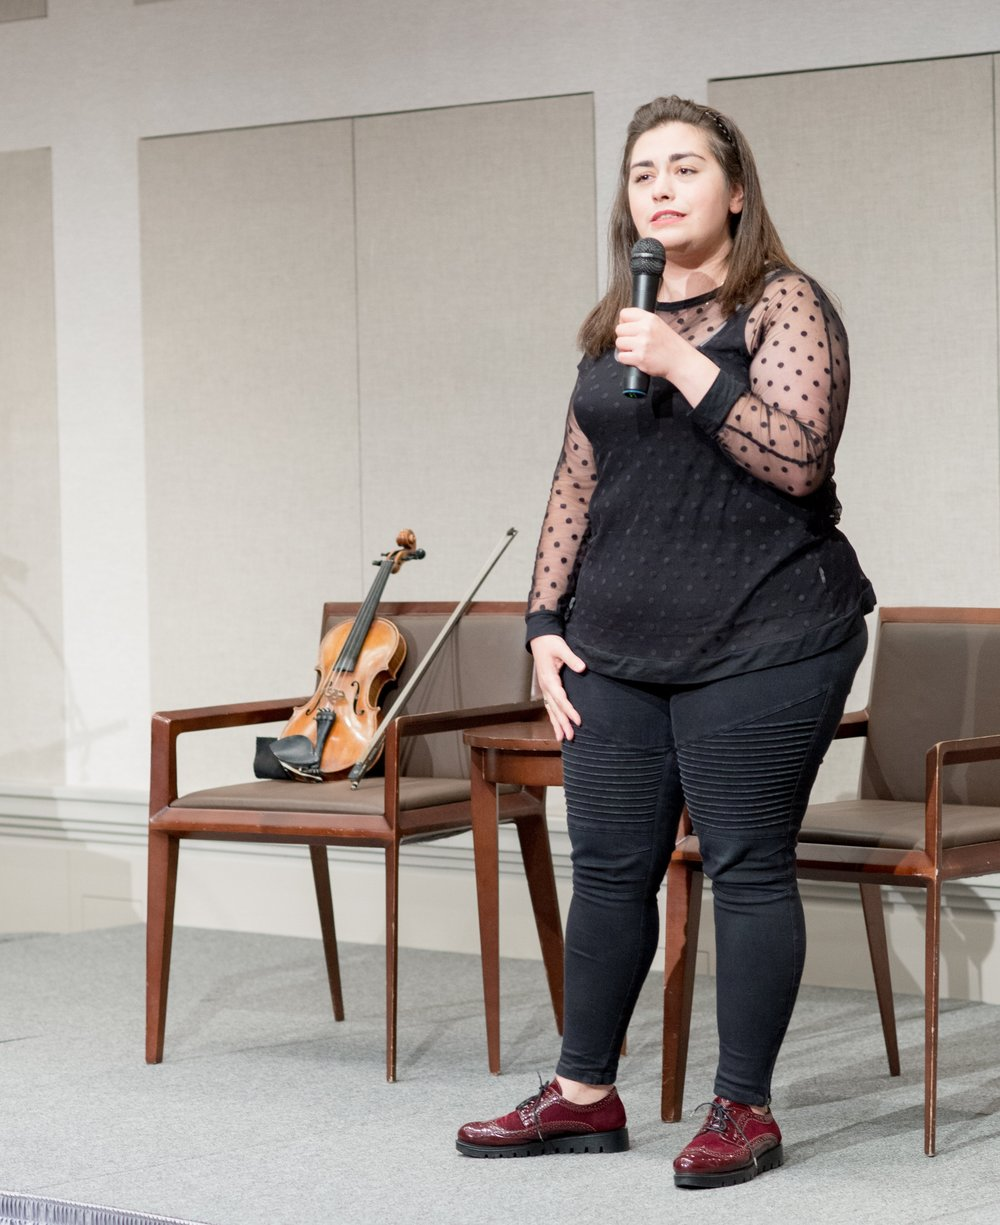 Mariela Shaker, celebrated Syrian violinist and refugee from Aleppo, performed at the event.